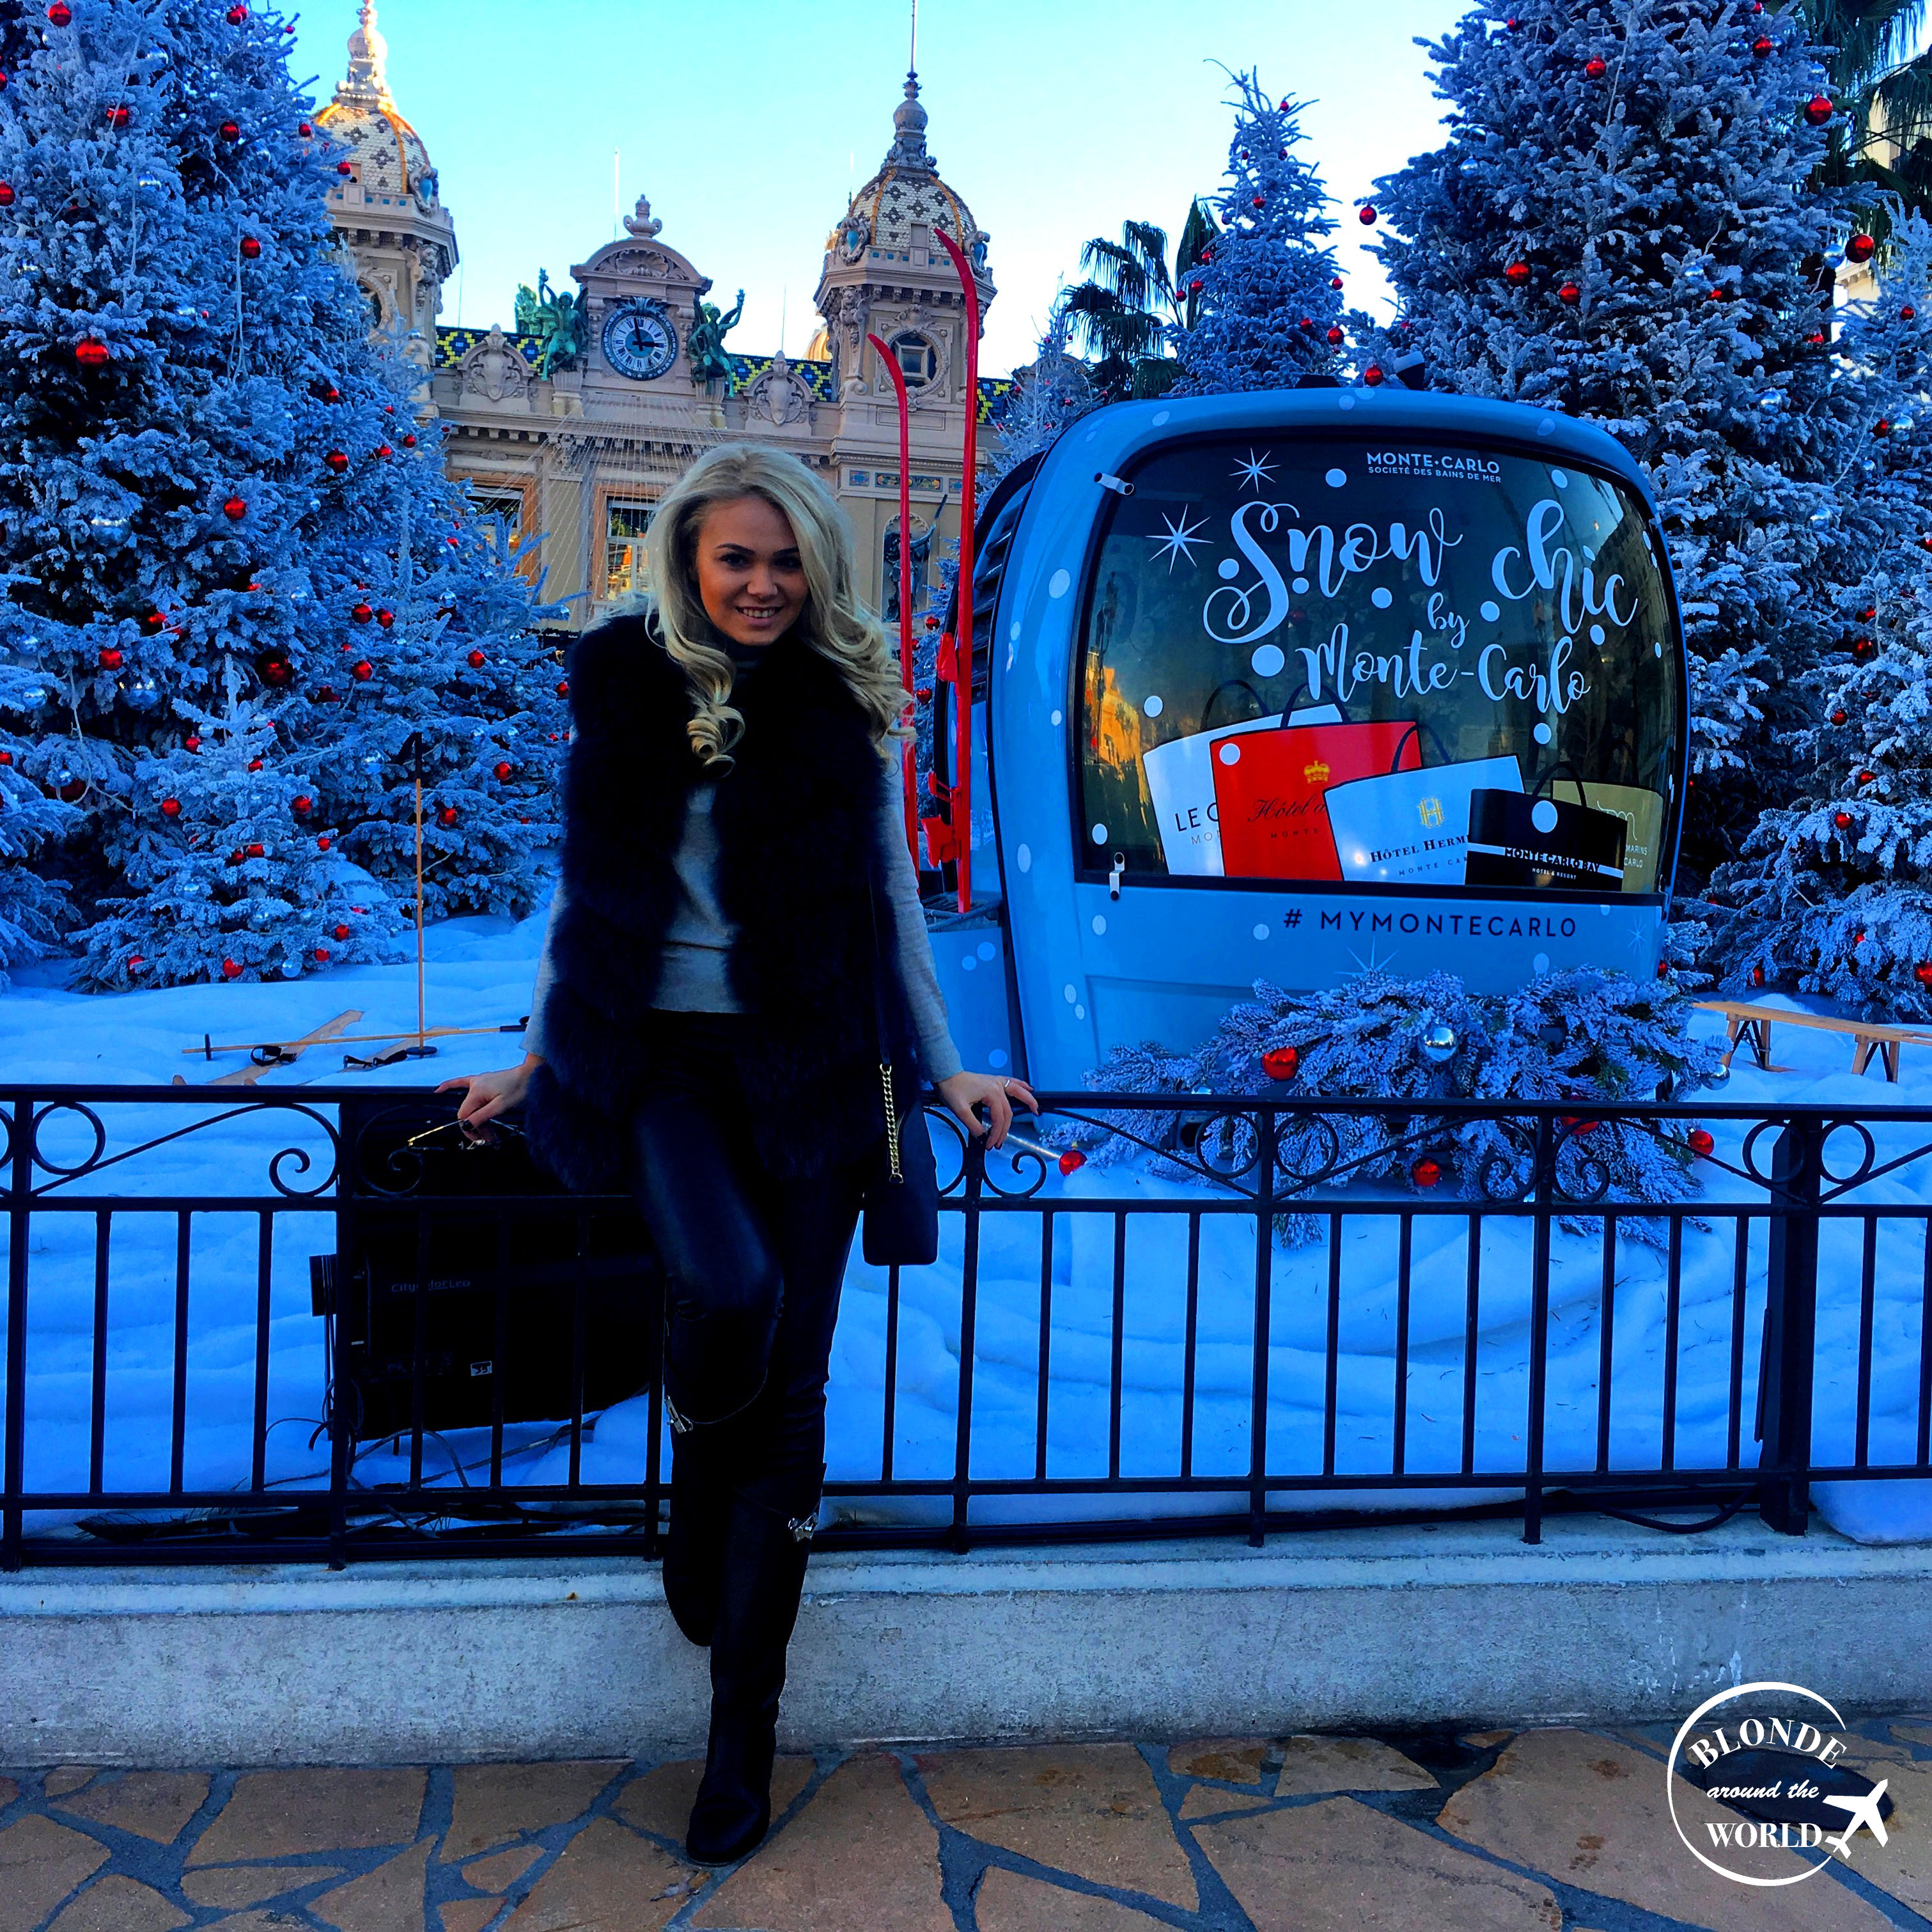 monaco-winter-snow-chic.JPG